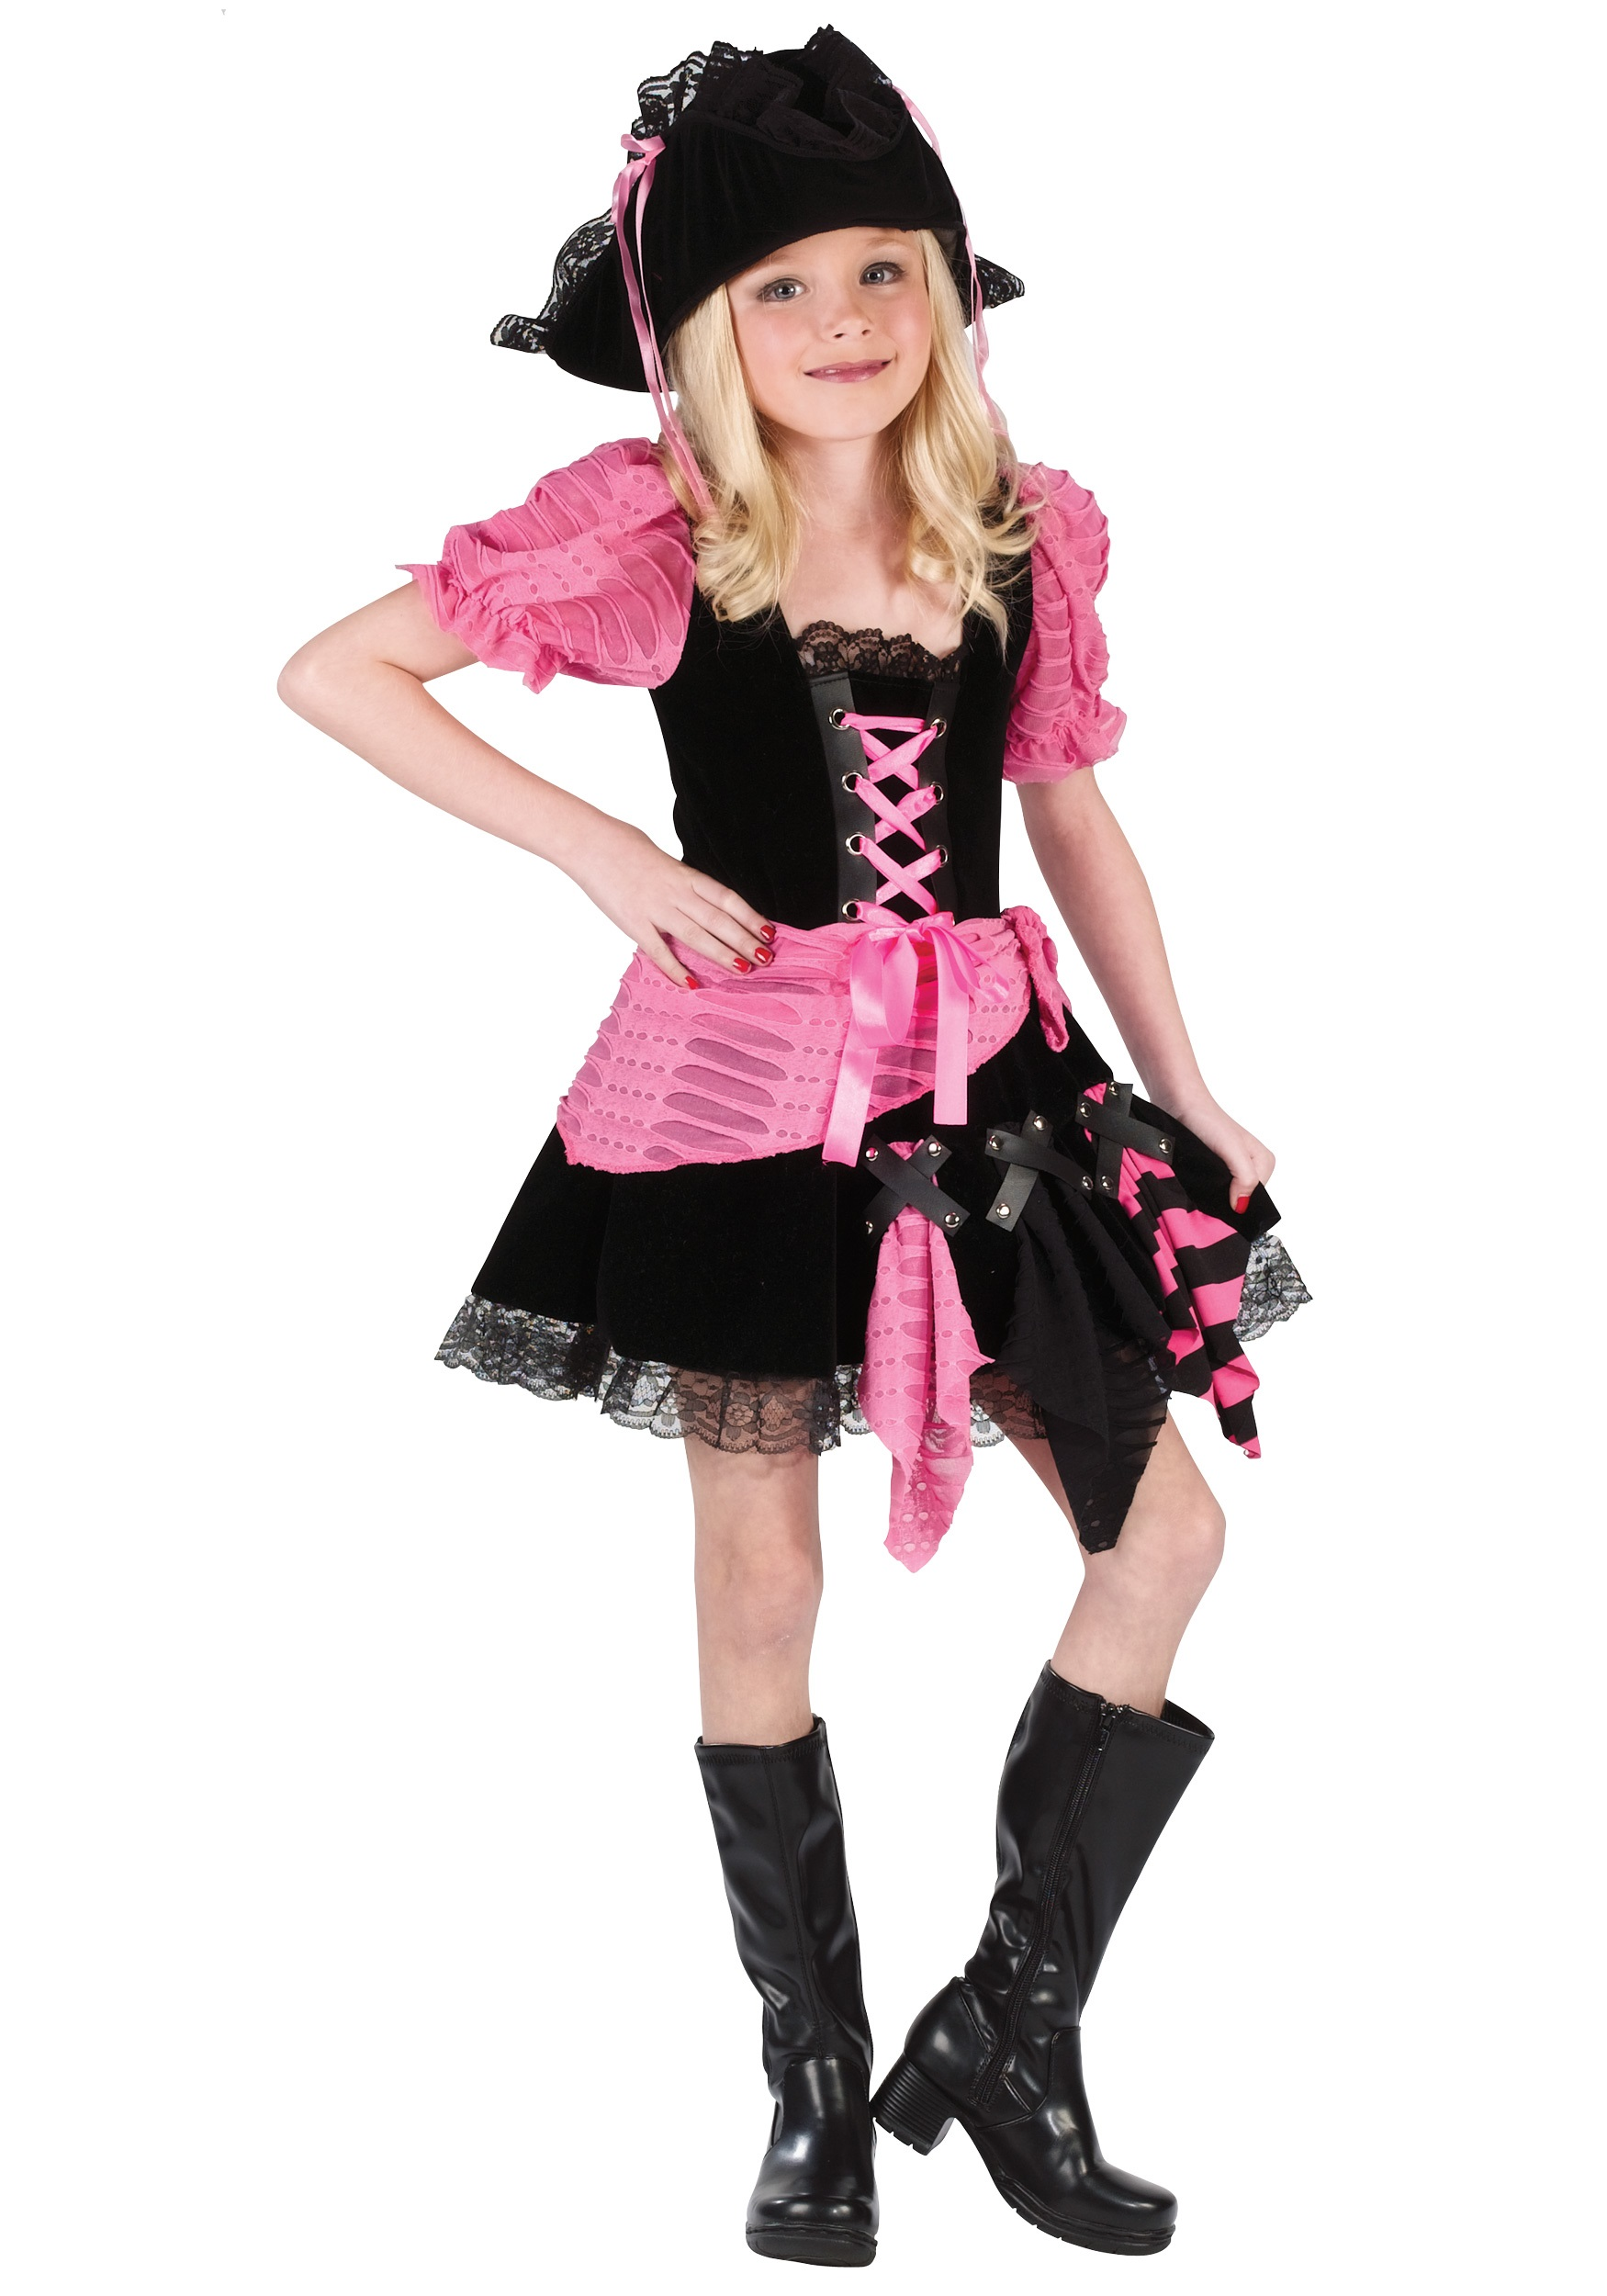 Kid's Pink Pirate Costume - Child Pirate Costumes Girl